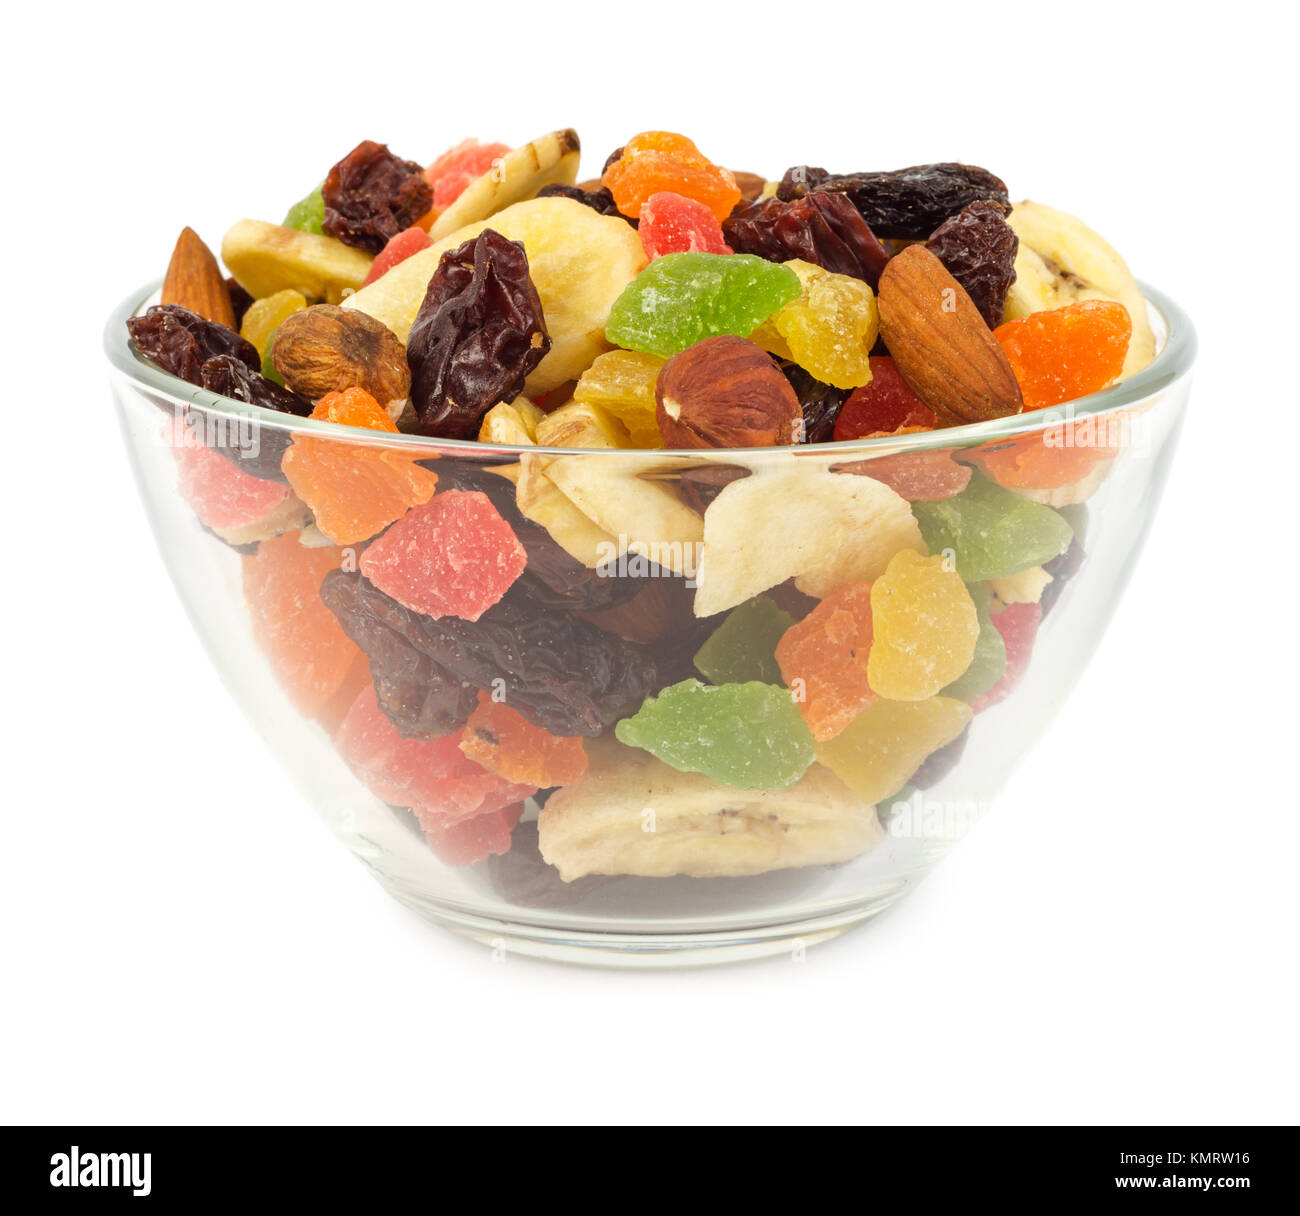 Dried fruits in glass bowl isolated on white background - Stock Image